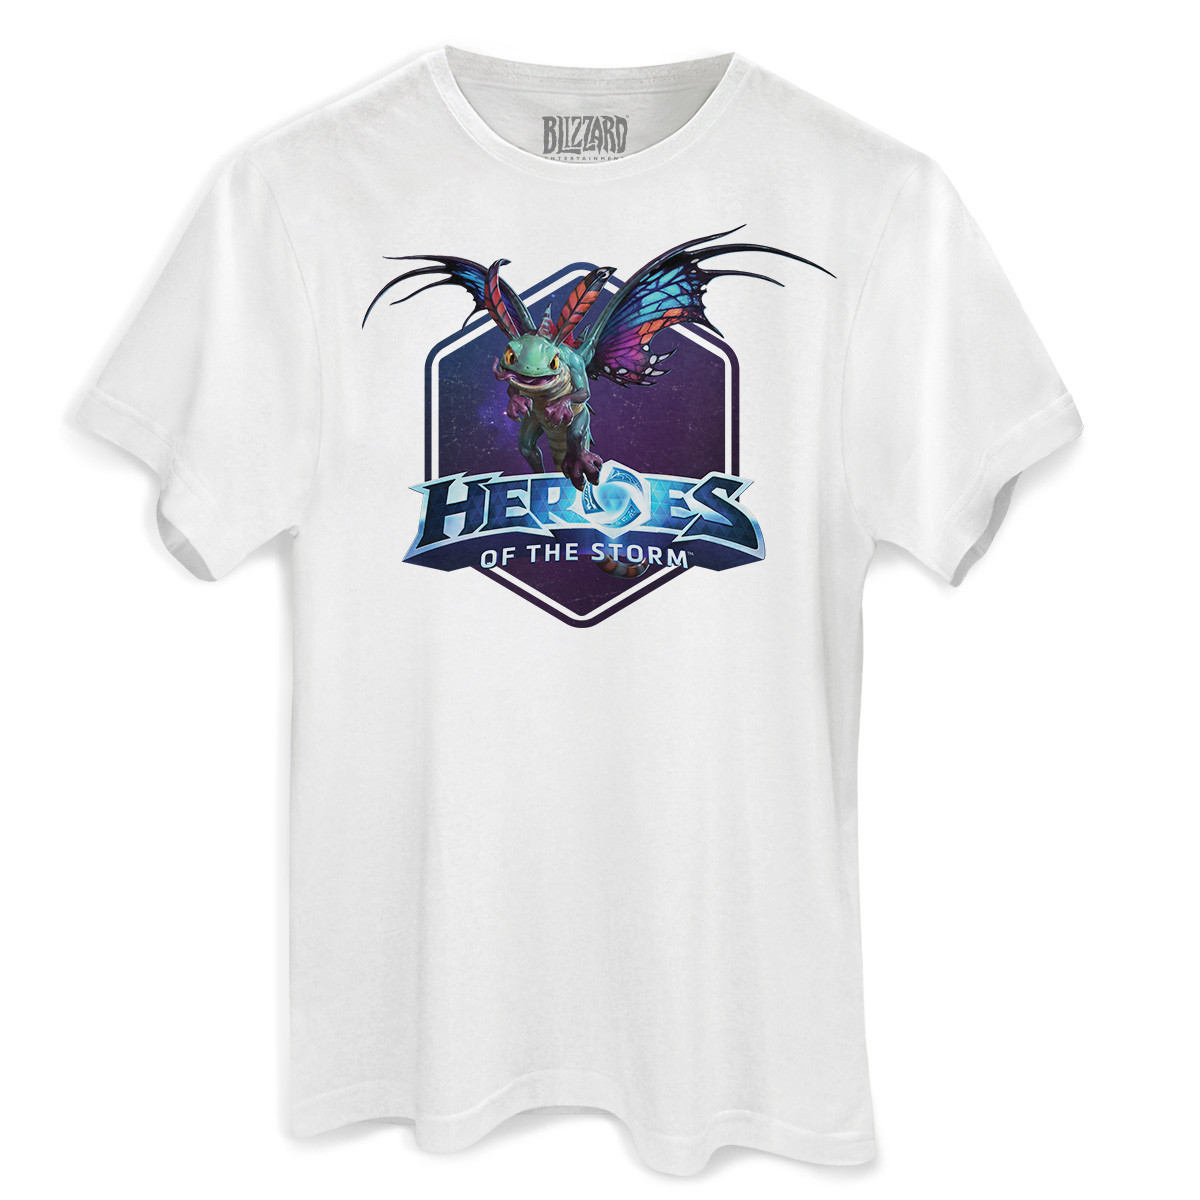 Camiseta Masculina Heroes Of The Storm Asaluz